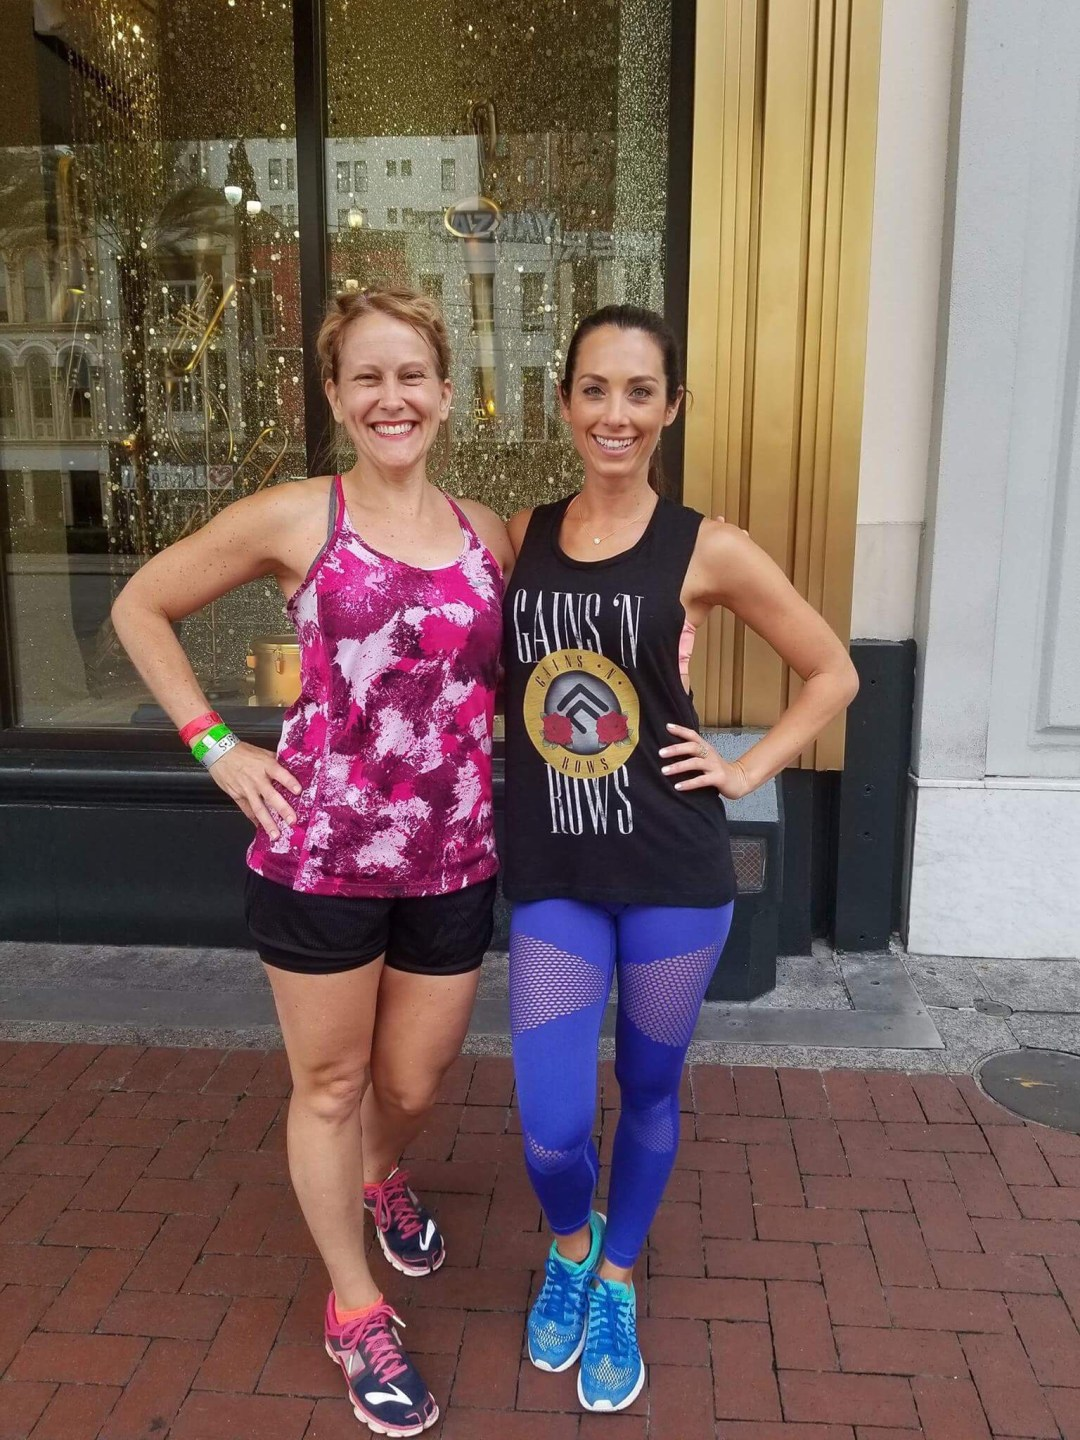 21 day fix, autumn calabrese, michelle krill, new orleans, get fit over 40, health and fitness, weight loss, dieting